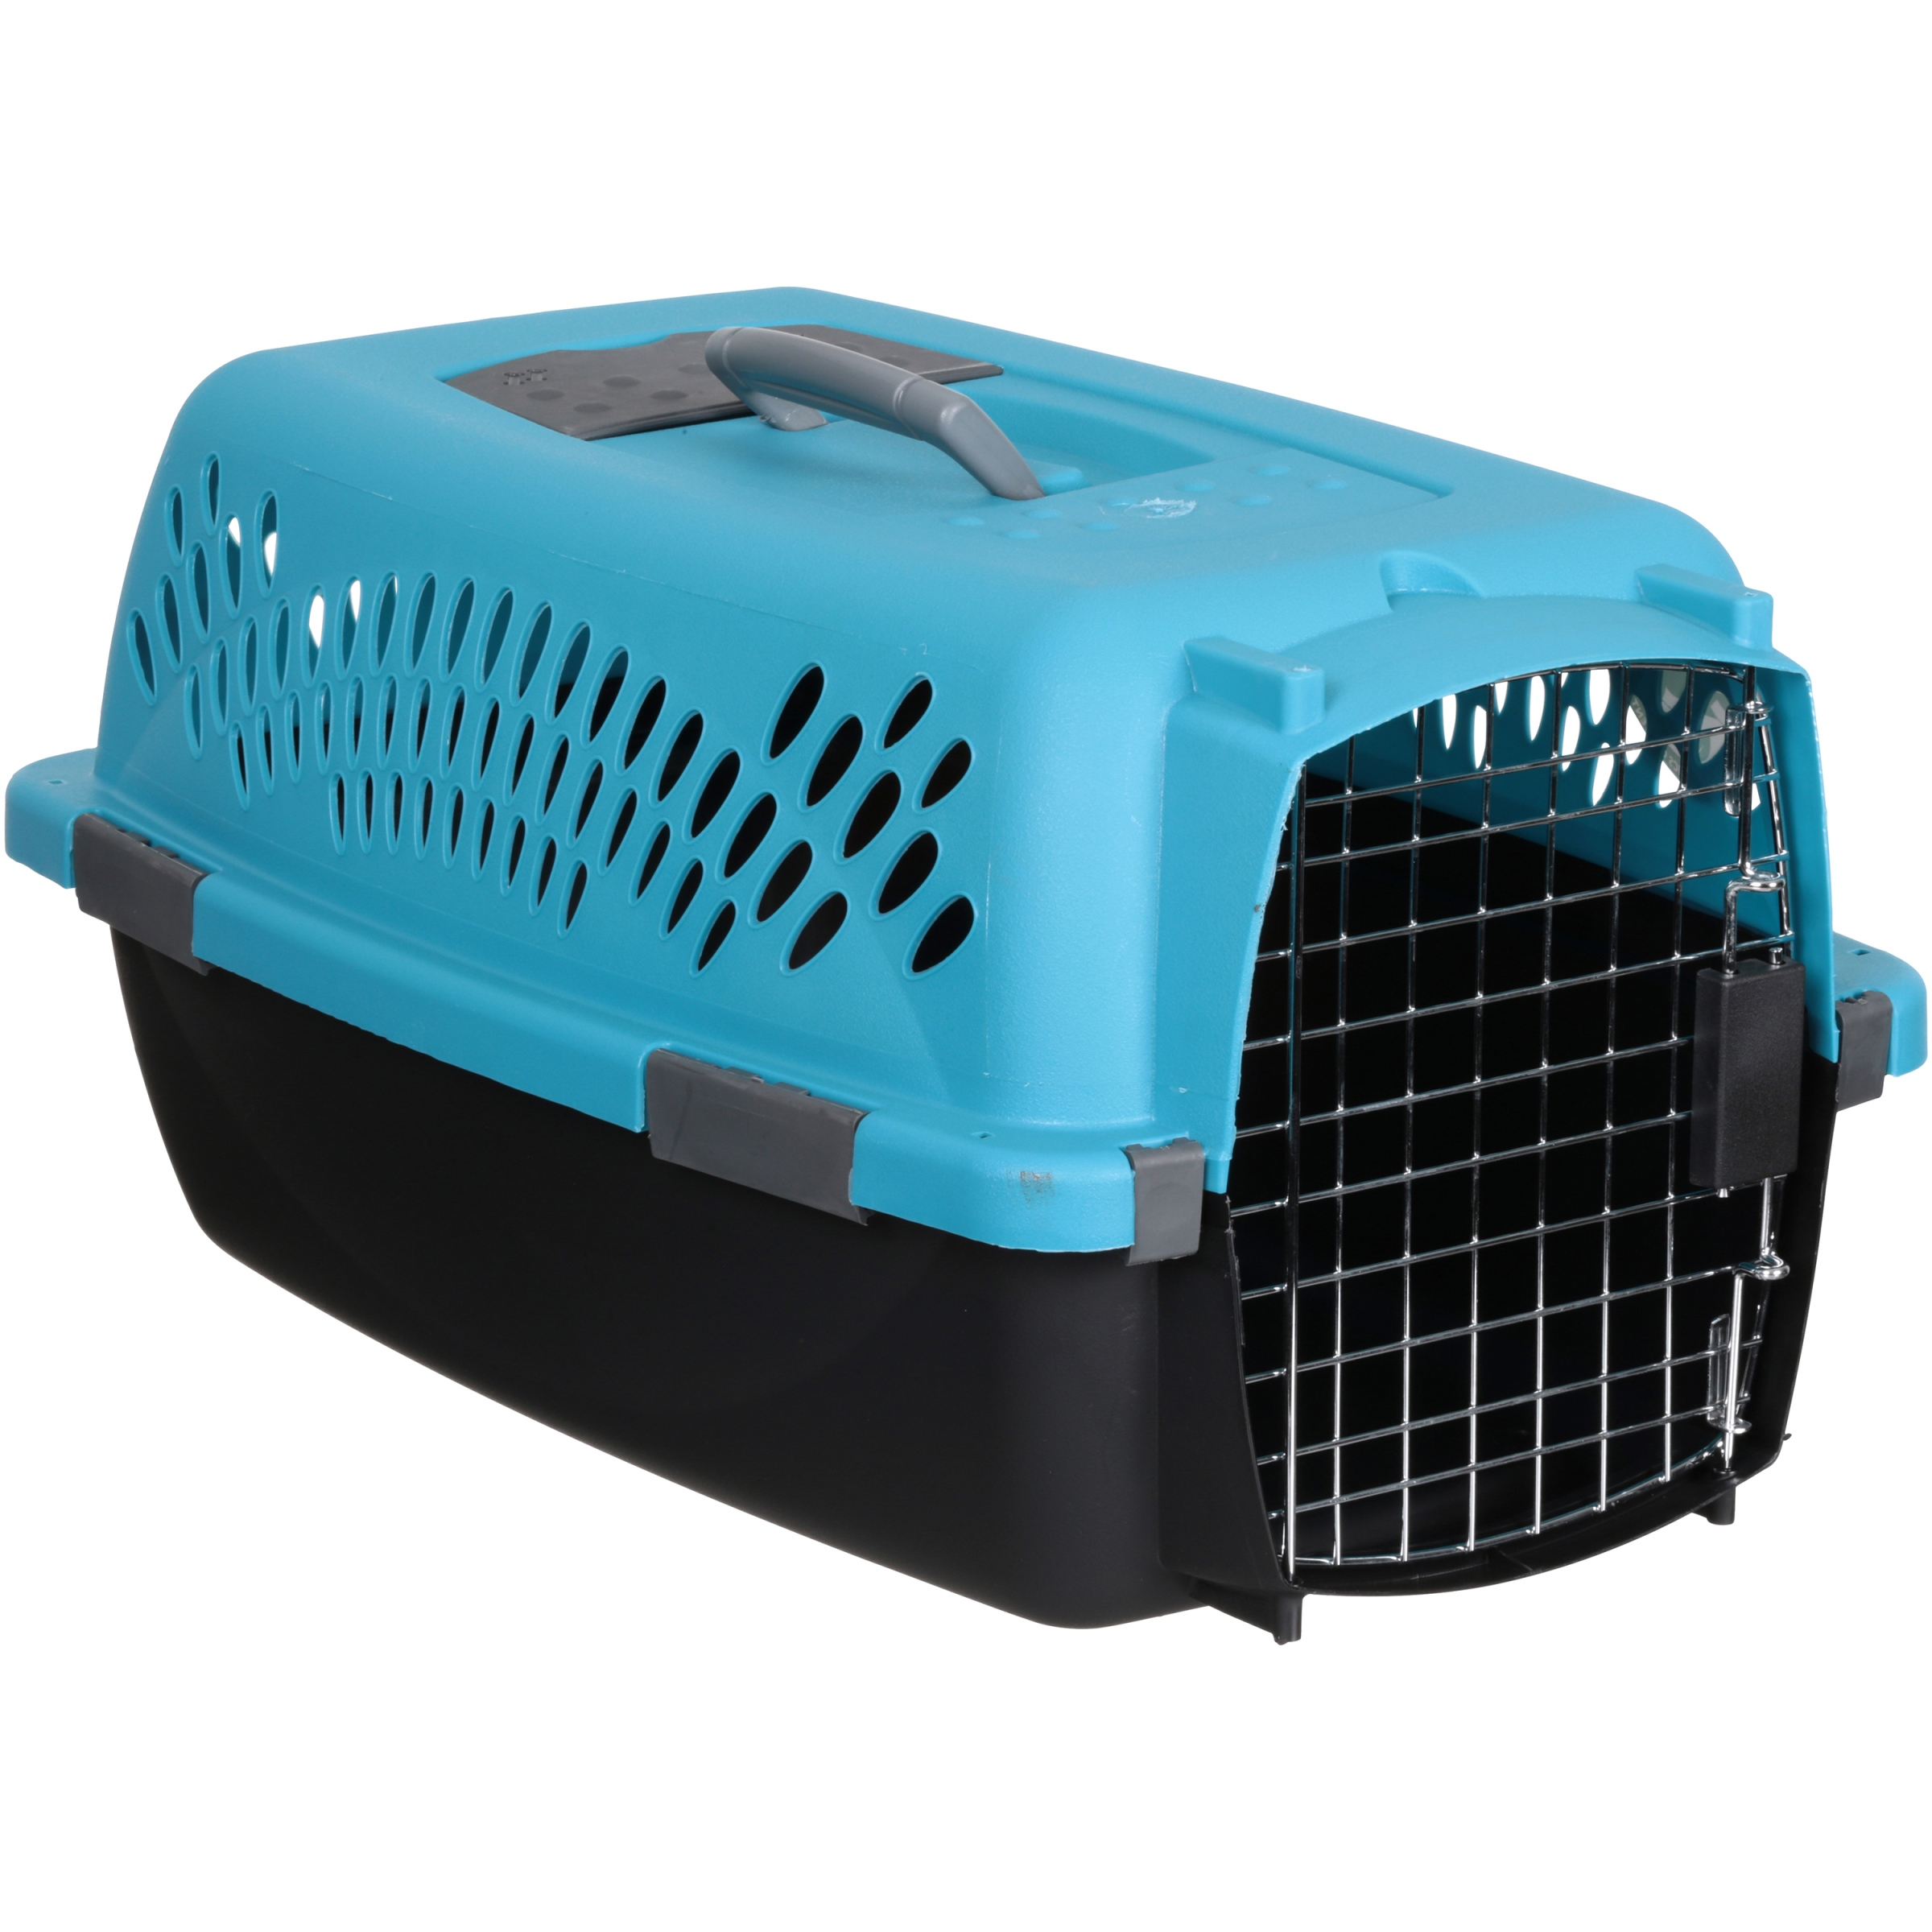 "Doskocil® Pet Taxi® 23"" to 15 lbs. Travel Crate"